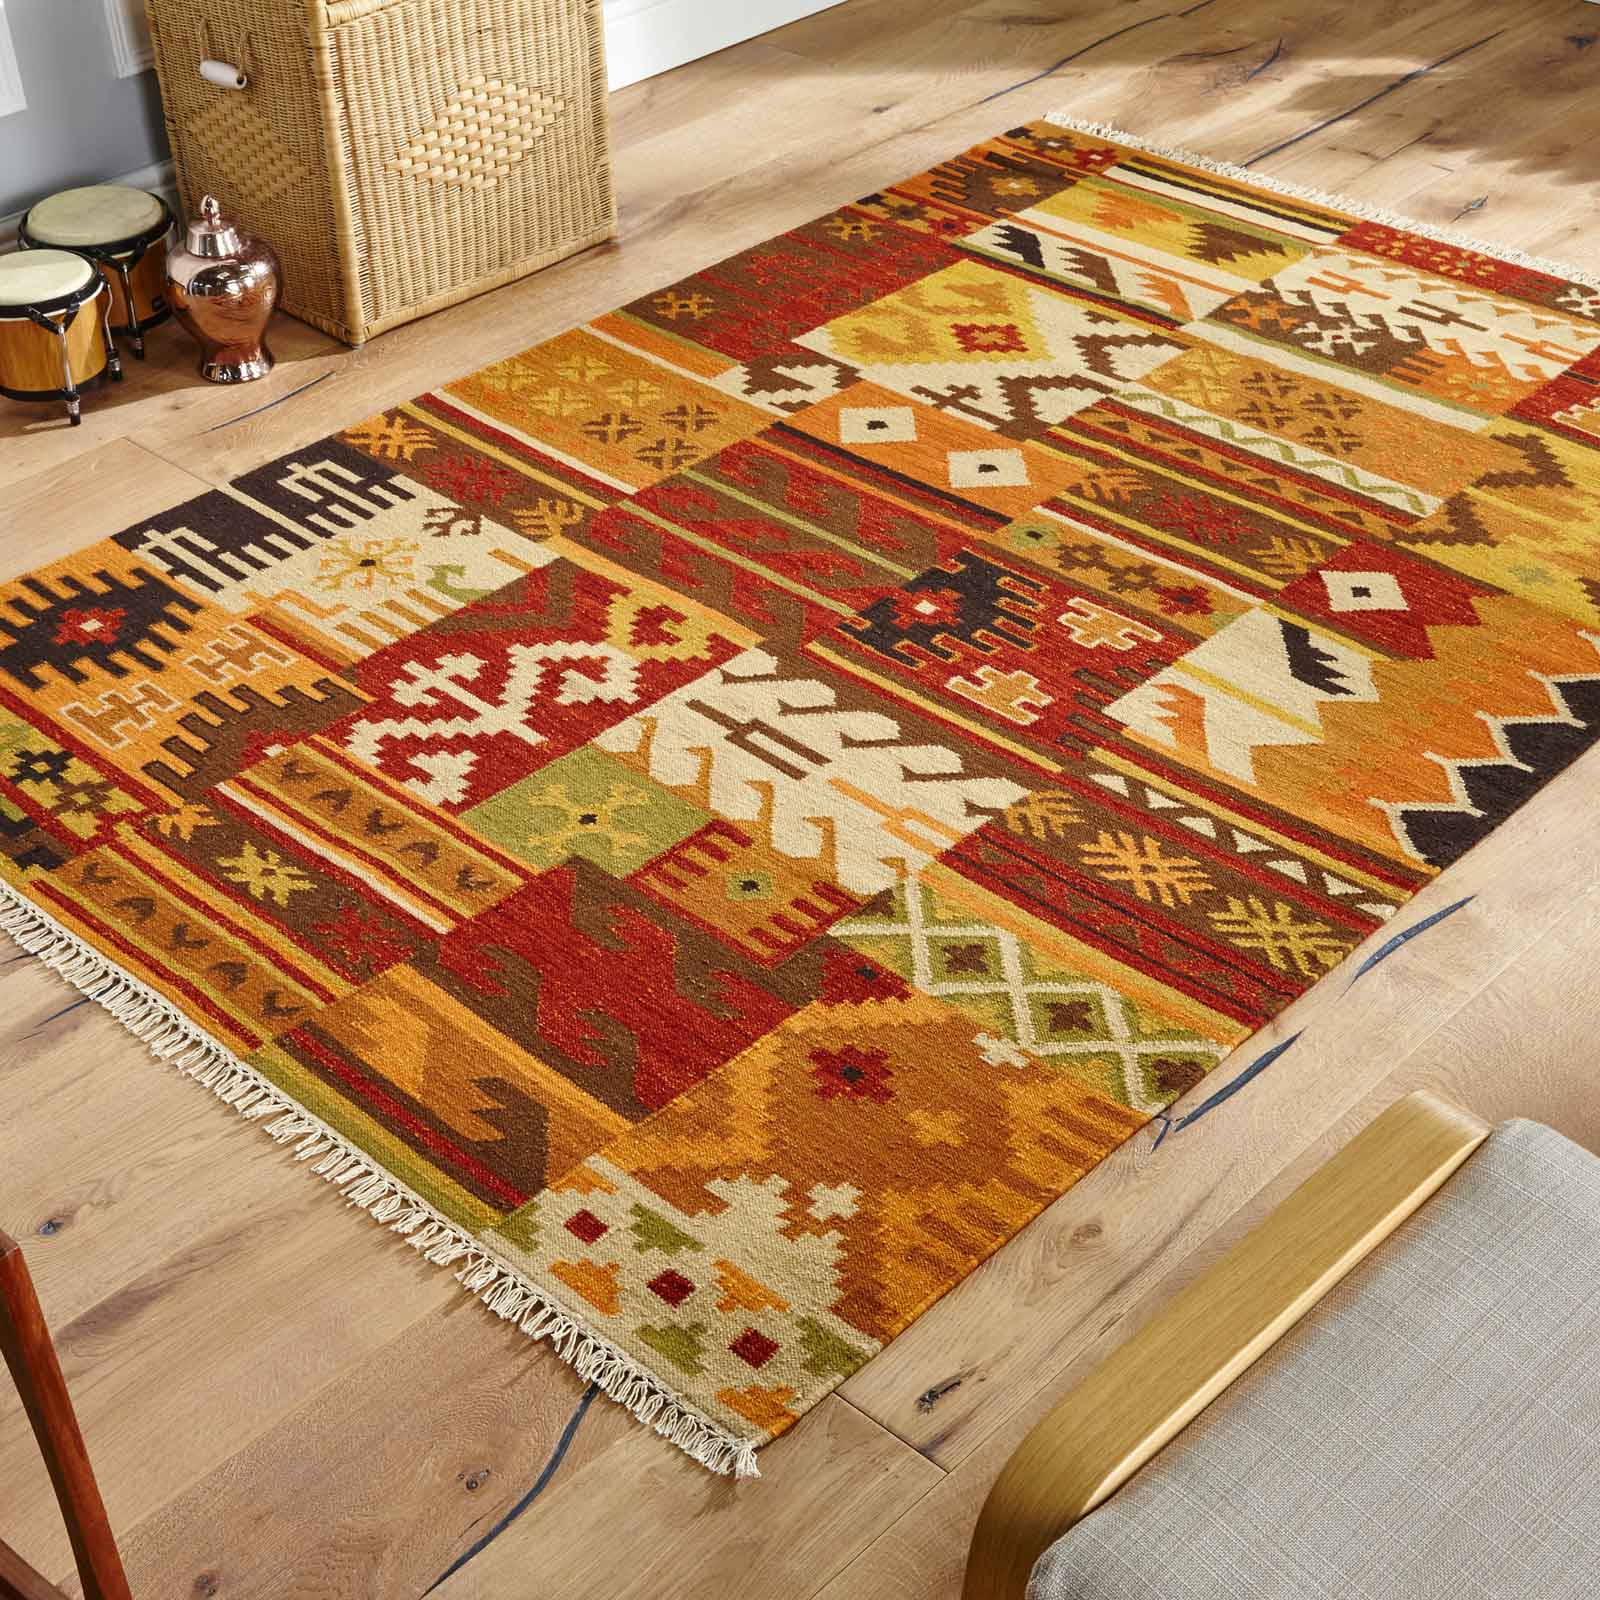 kilims rugs kilim rug on wooden flooring with chair on frame of image the rug ZILALUD